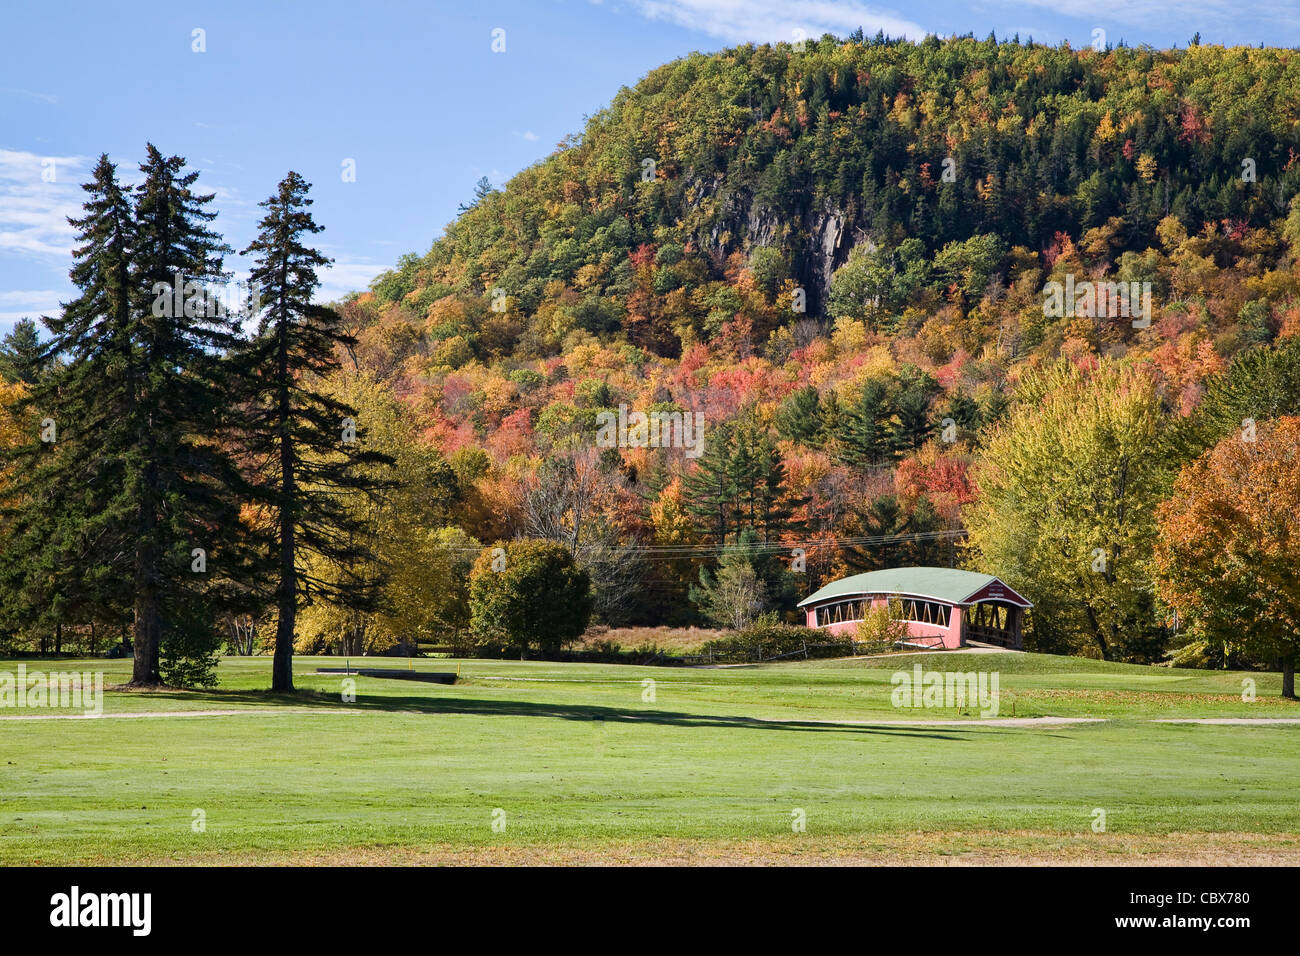 Wentworth Stock Photos & Wentworth Stock Images - Alamy